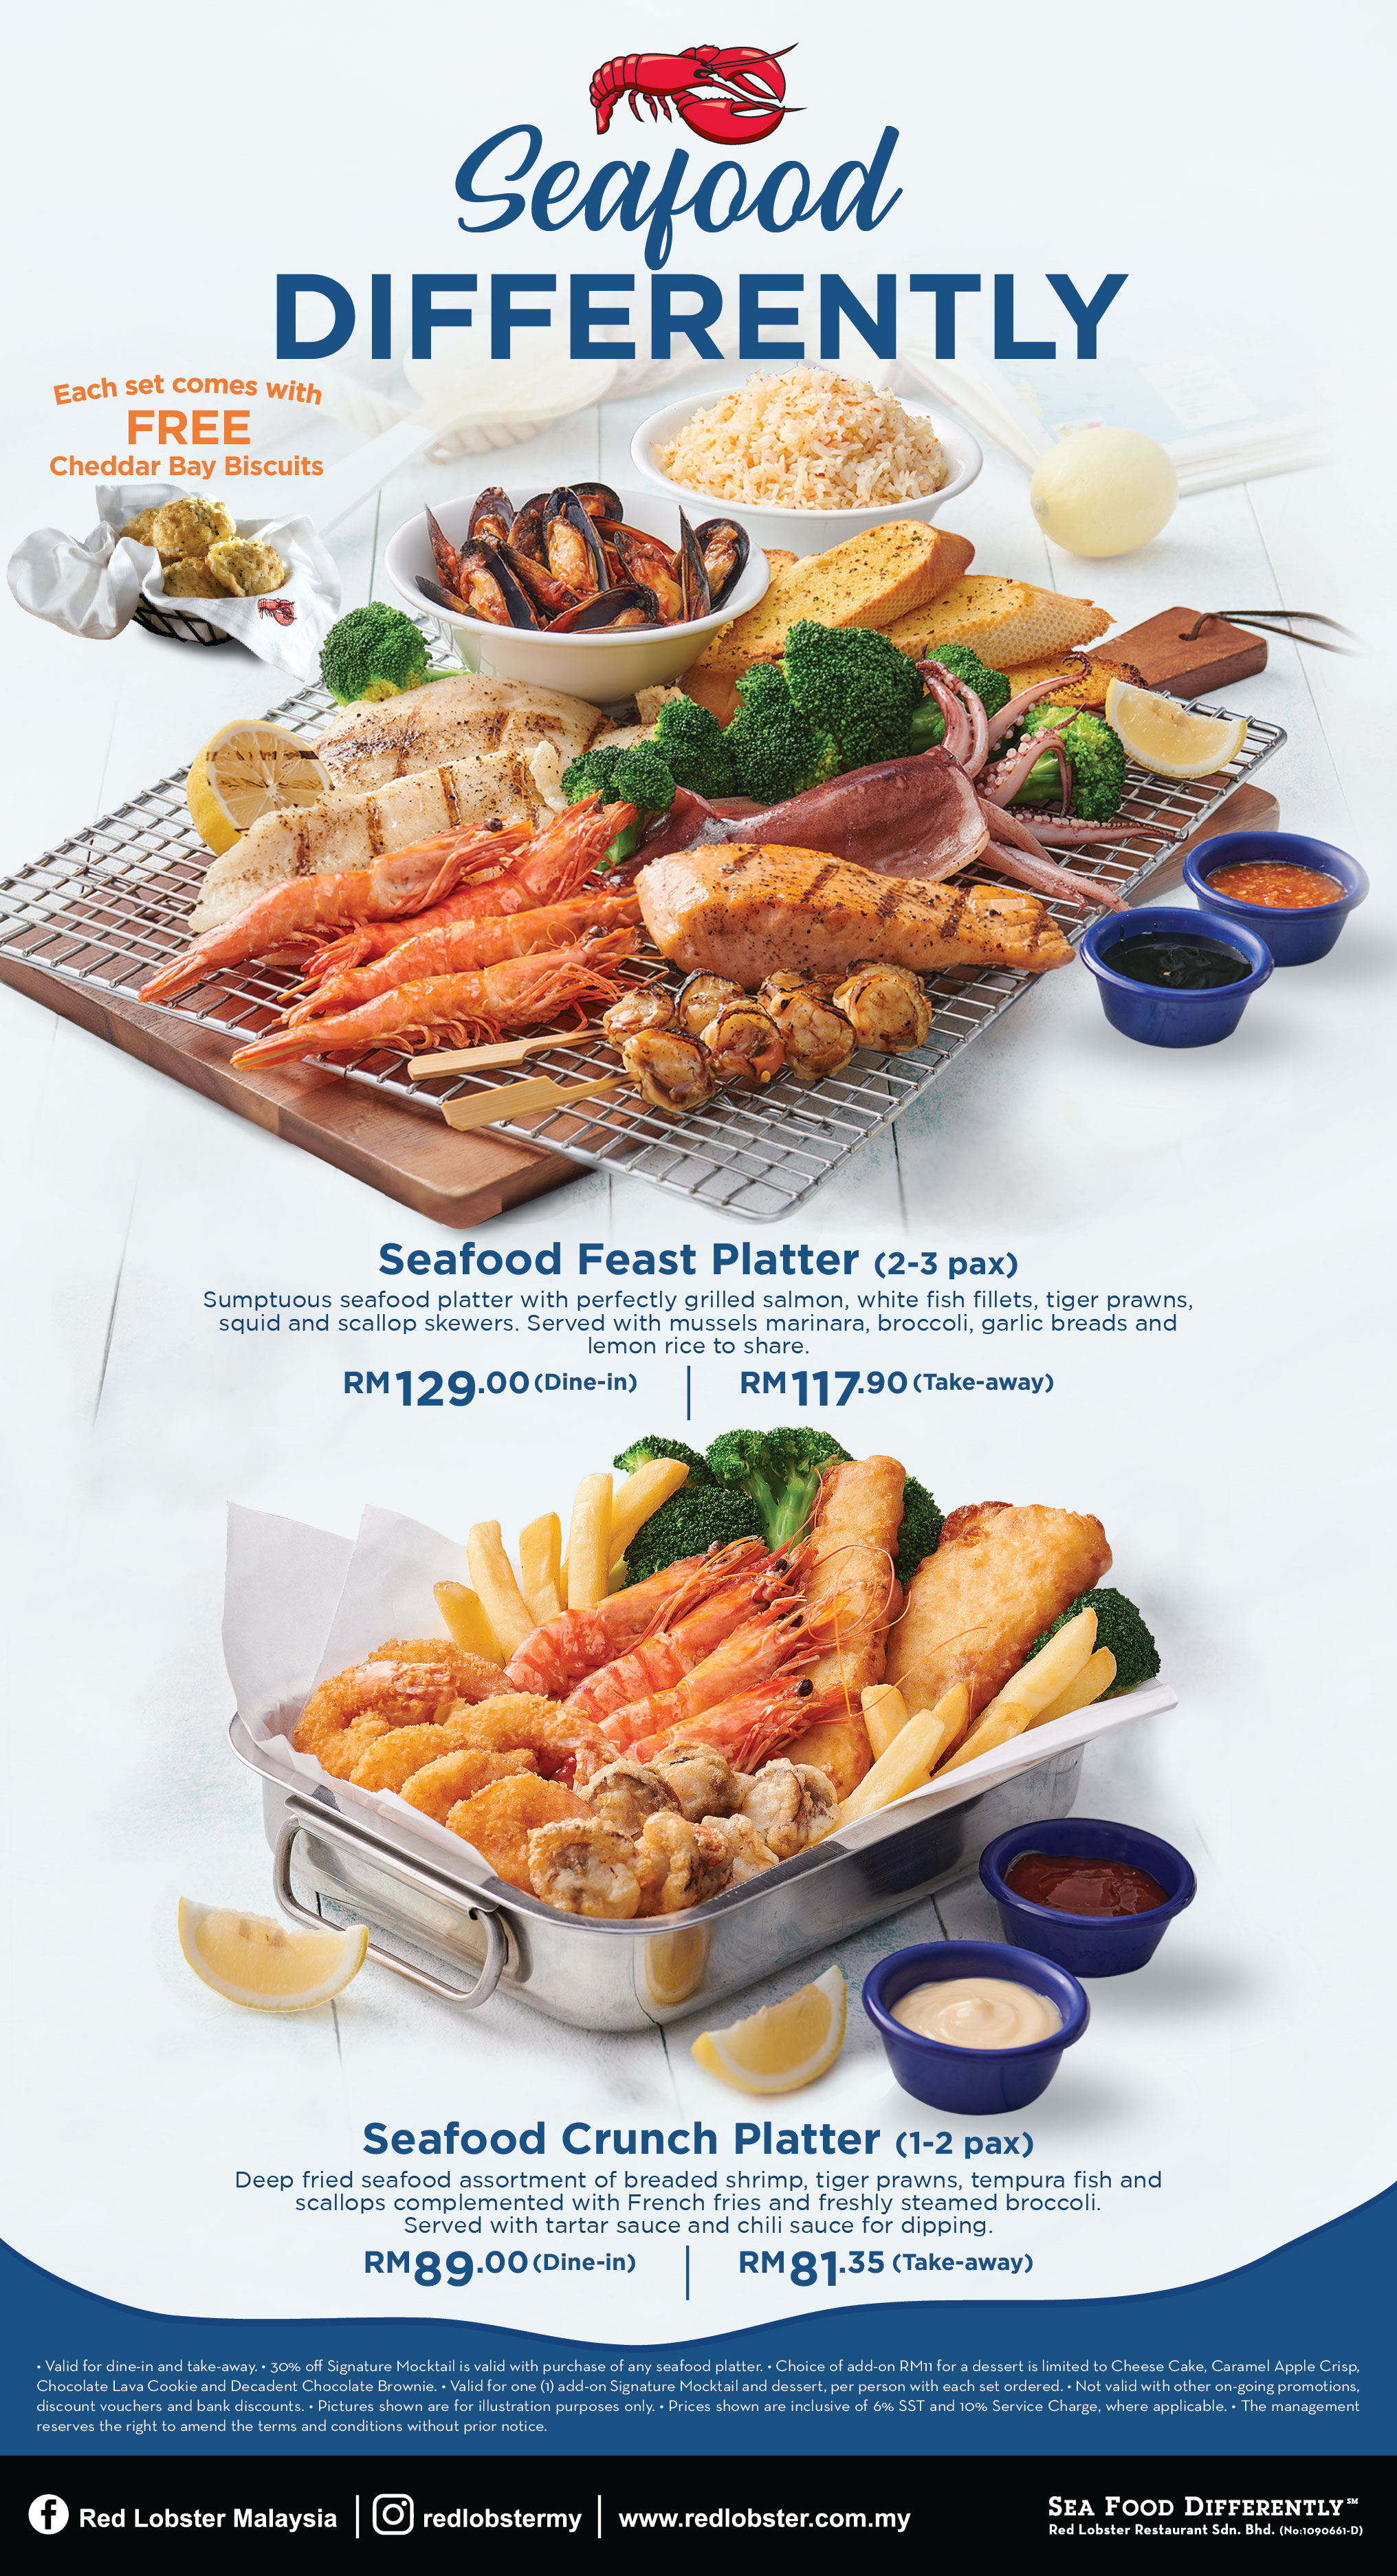 RL Seafood Differently - Menu Card Front-01.jpg